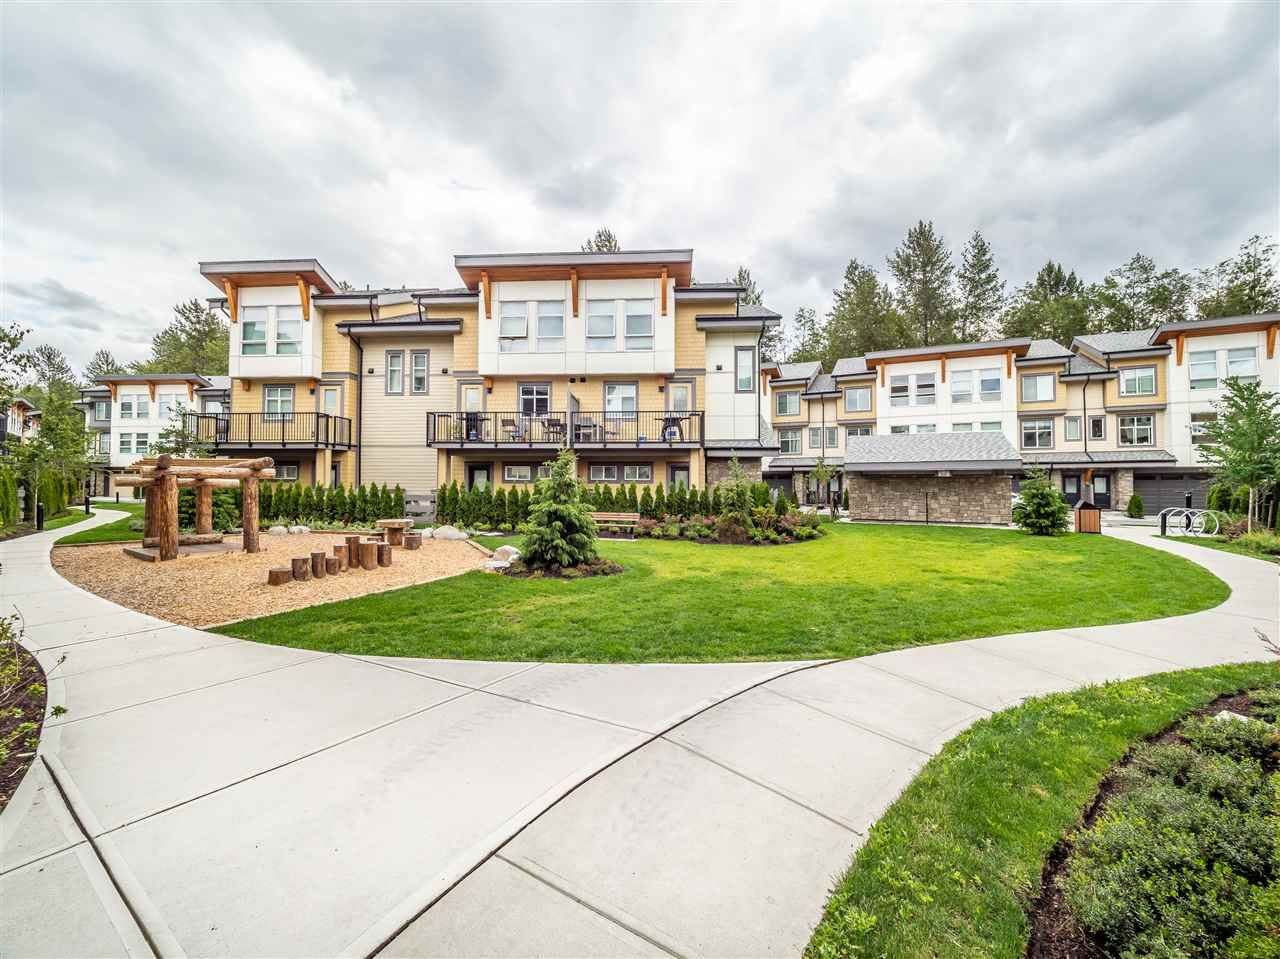 Main Photo: 67 39548 Loggers Lane in Squamish: Townhouse for sale : MLS®# R2419330